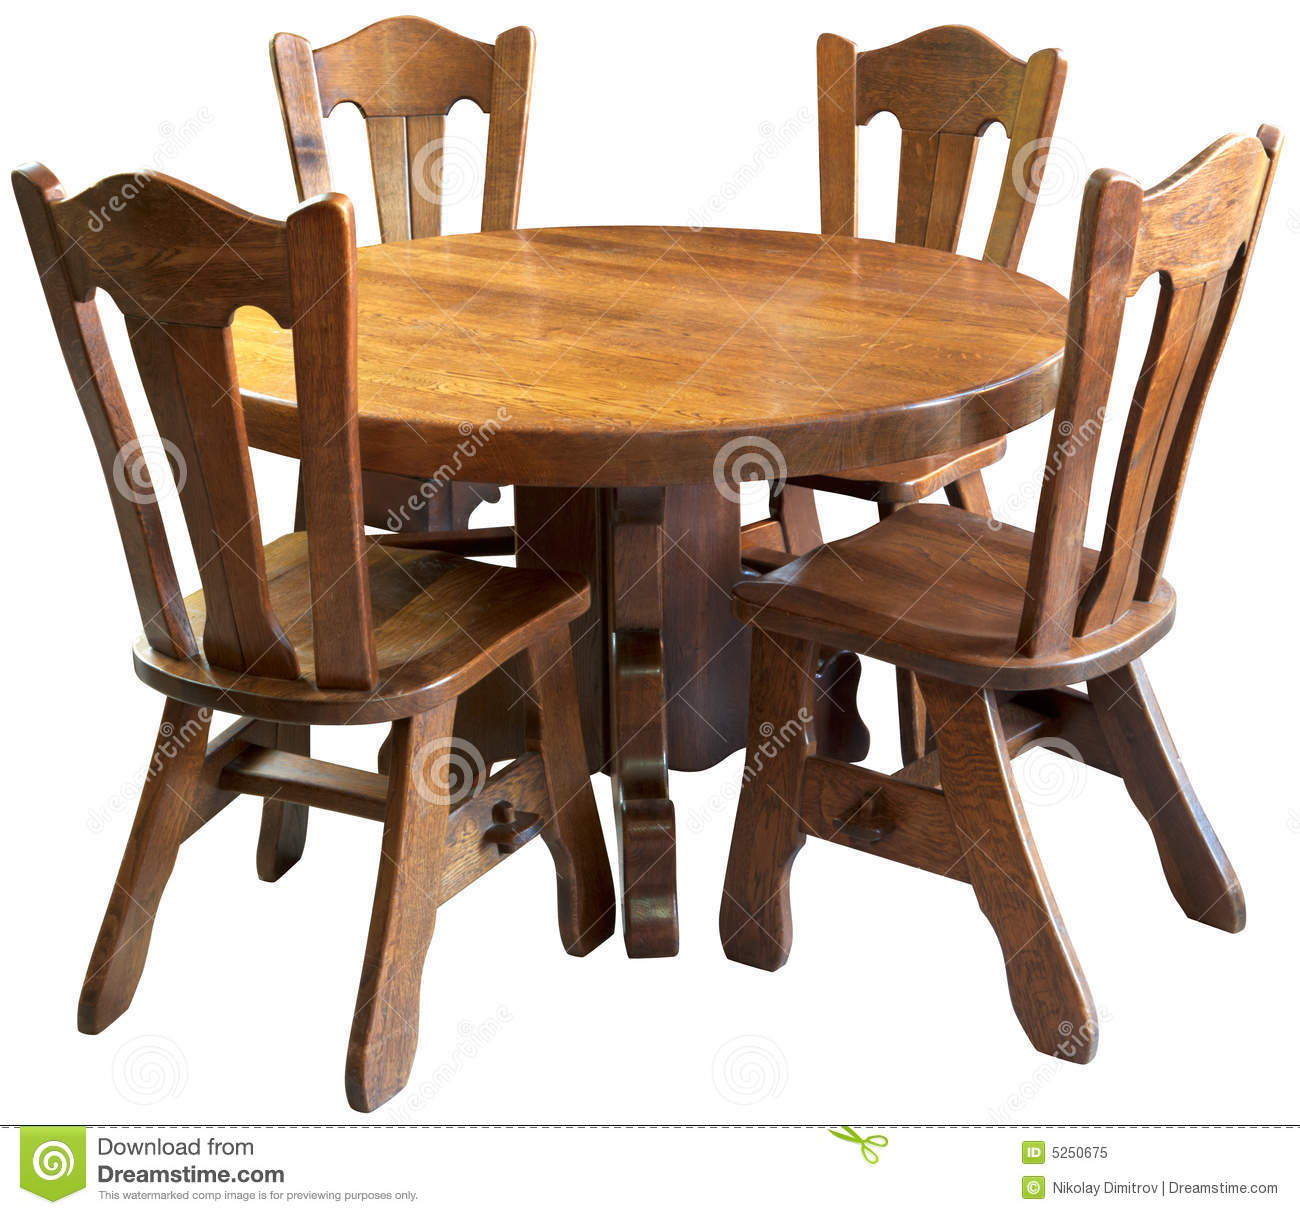 Solid Wood Kitchen Table Chairs